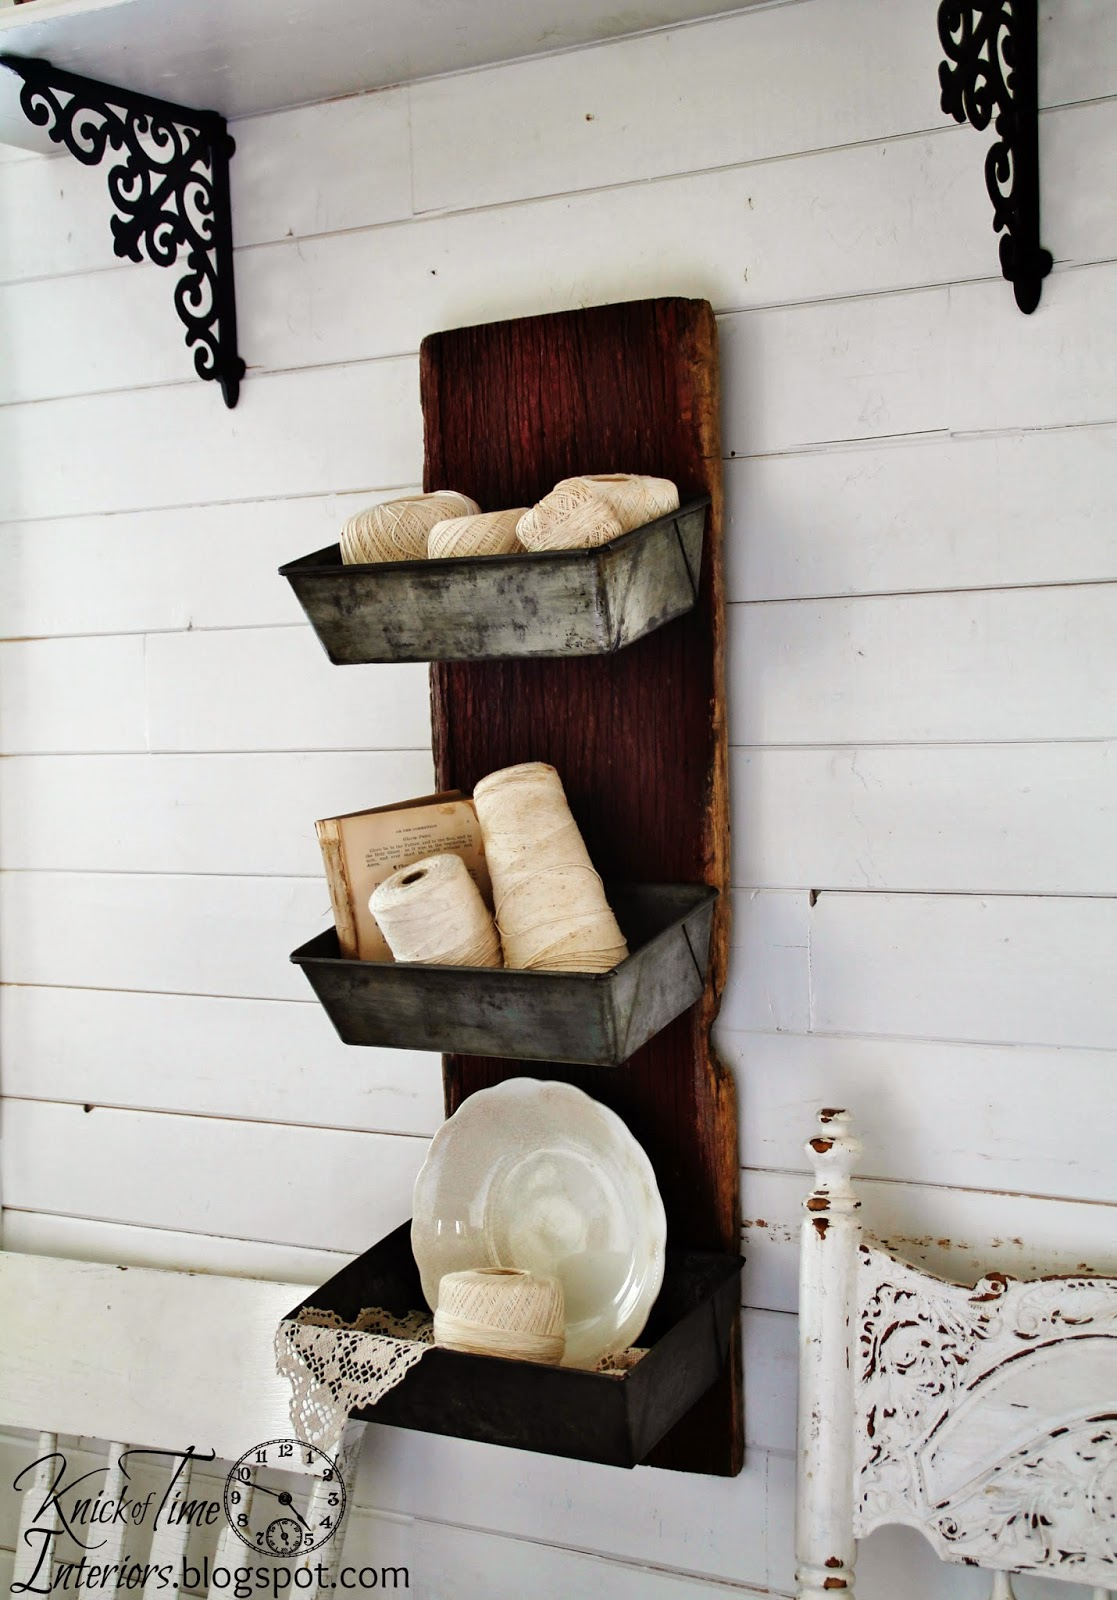 Repurposed-Barn-Wood-Antique-Bread-Pans-Wall-Bins-by Knick of Time